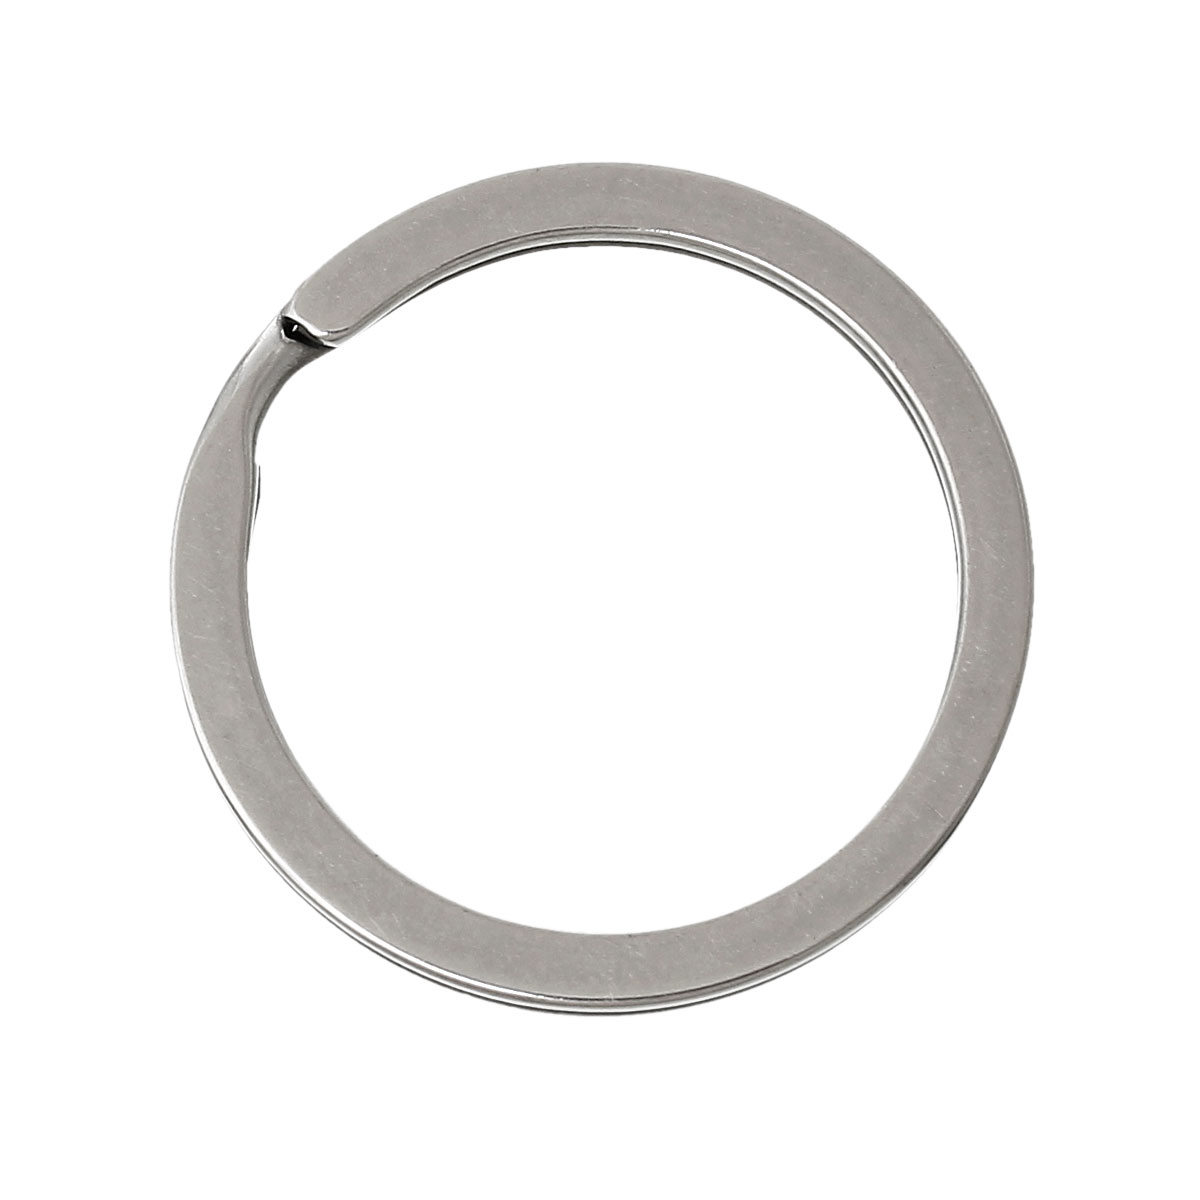 1 1/8 Friendly Doreenbeads Stainless Steel Key Chains Key Rings Circle Ring Silver Tone 3.0cm 3 Pcs 2015 New Dia